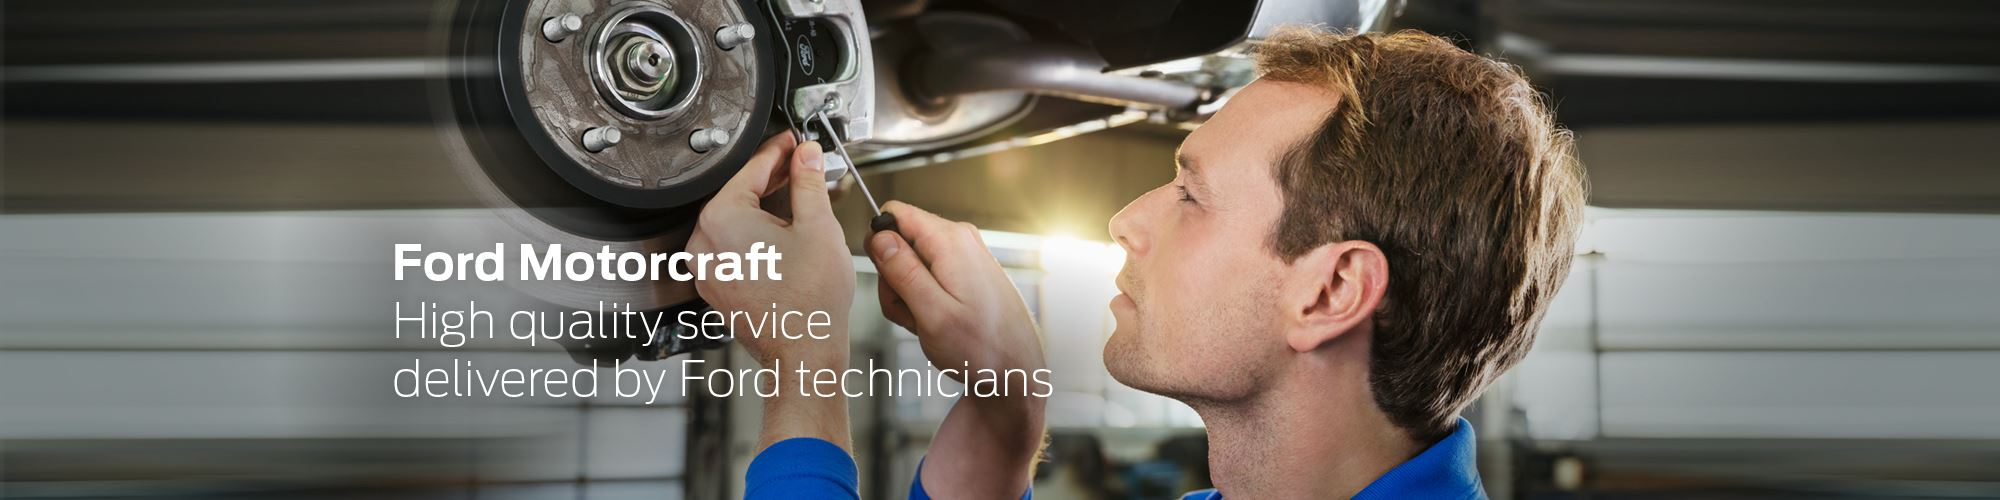 Ford Motocraft Service | TrustFord